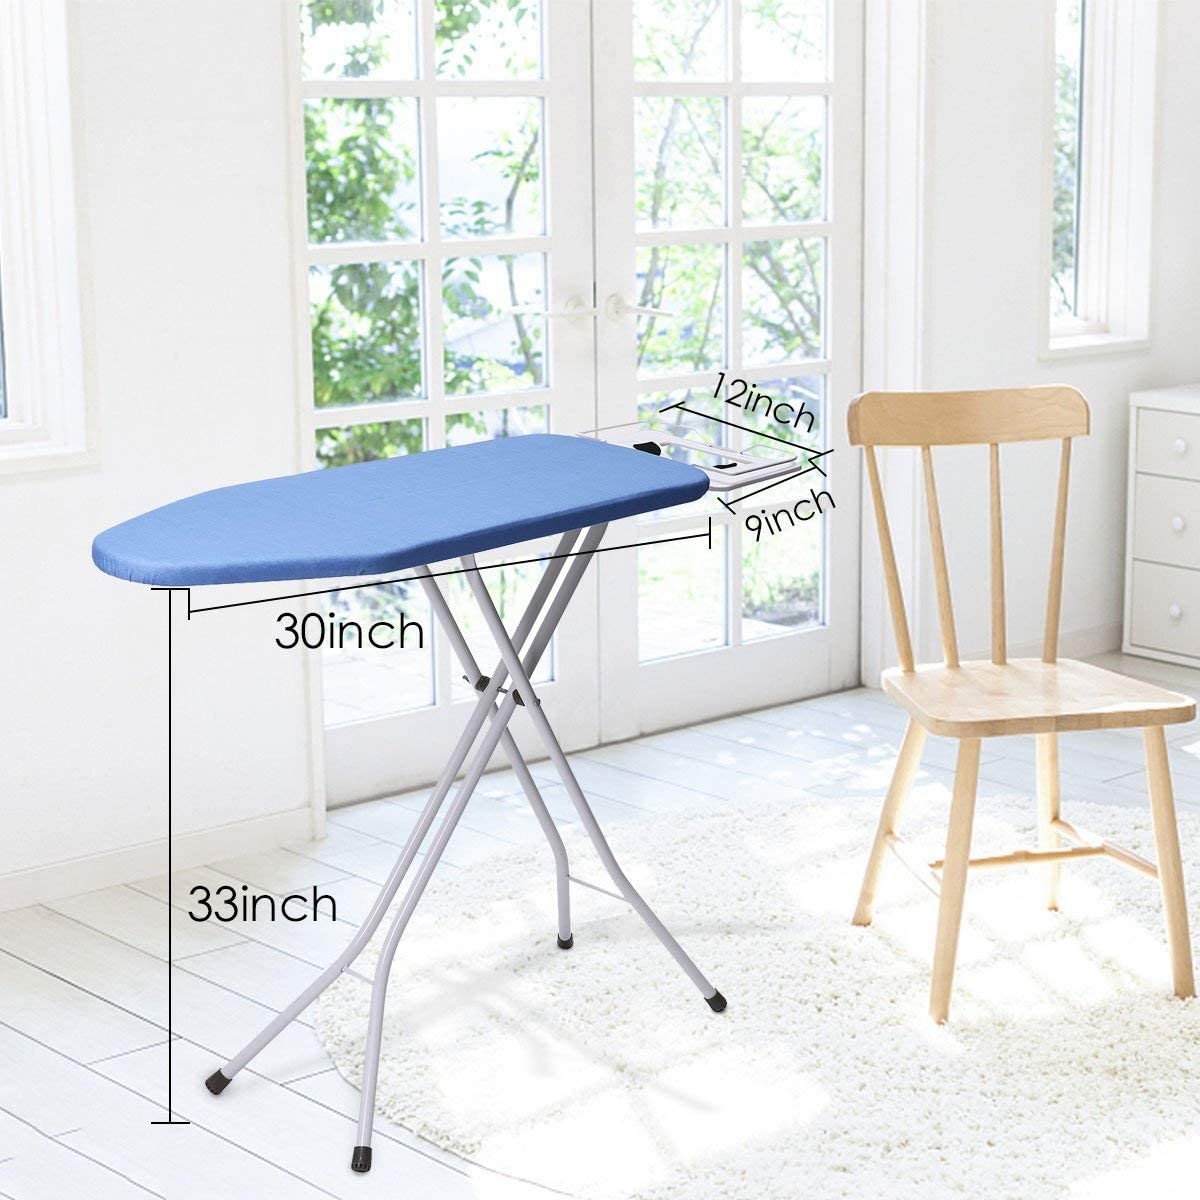 king do way Table Top Ironing Board With Iron Rest Design Foldable For Home Blue Blue